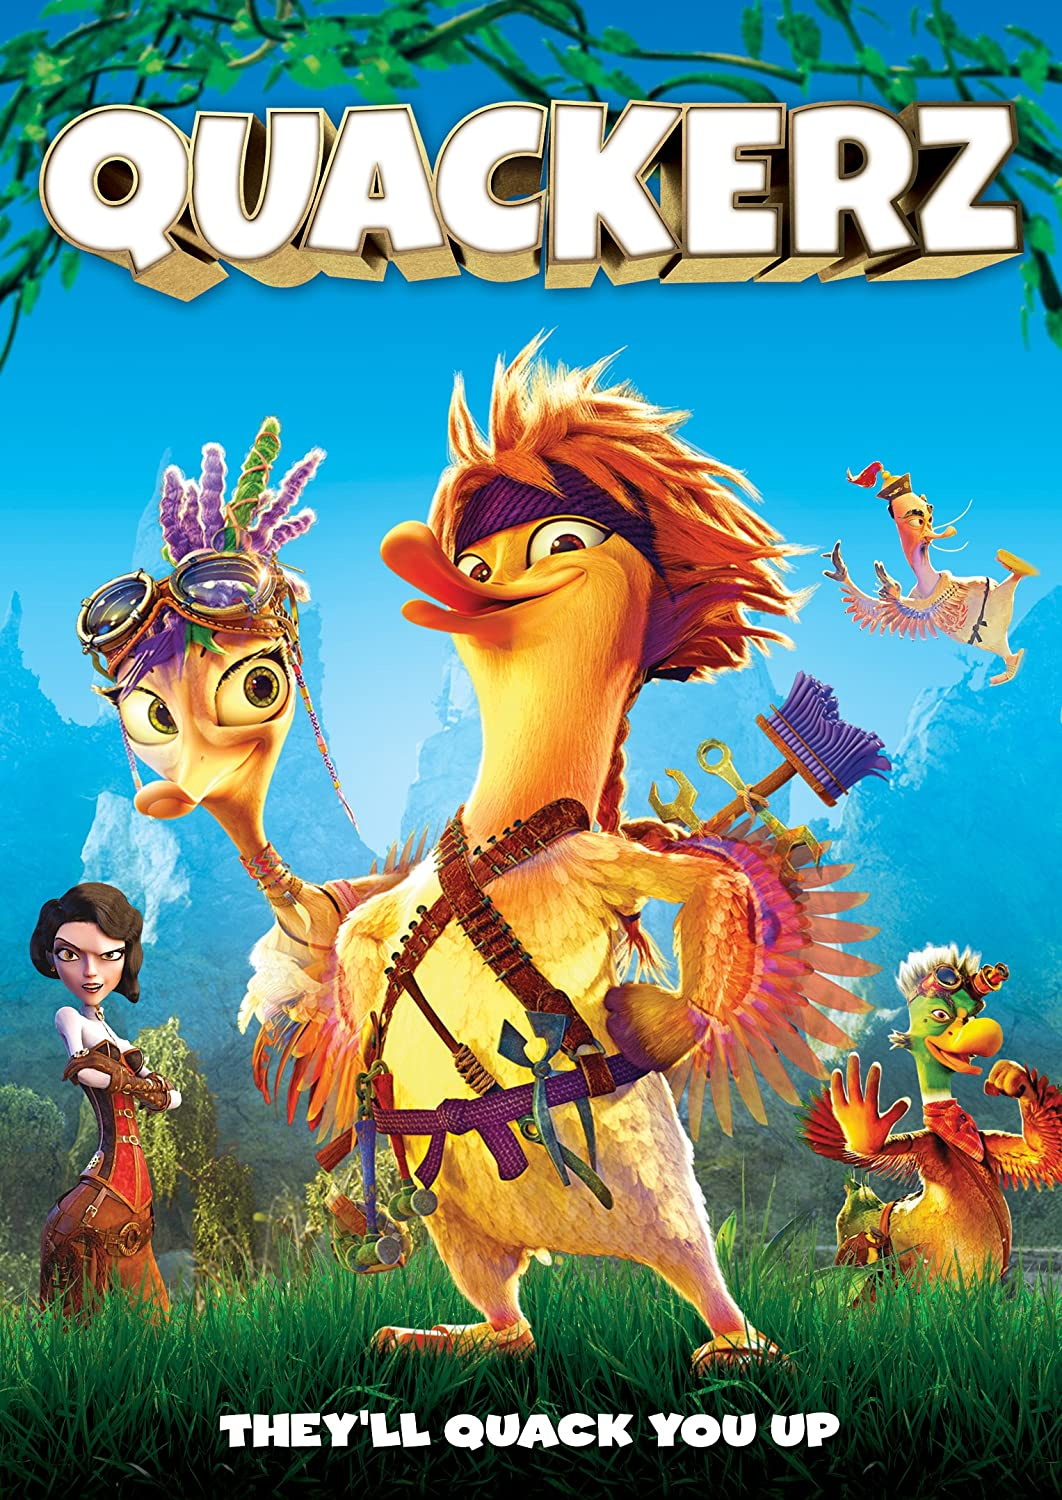 Quackerz 2016 BRRip XviD AC3-EVO